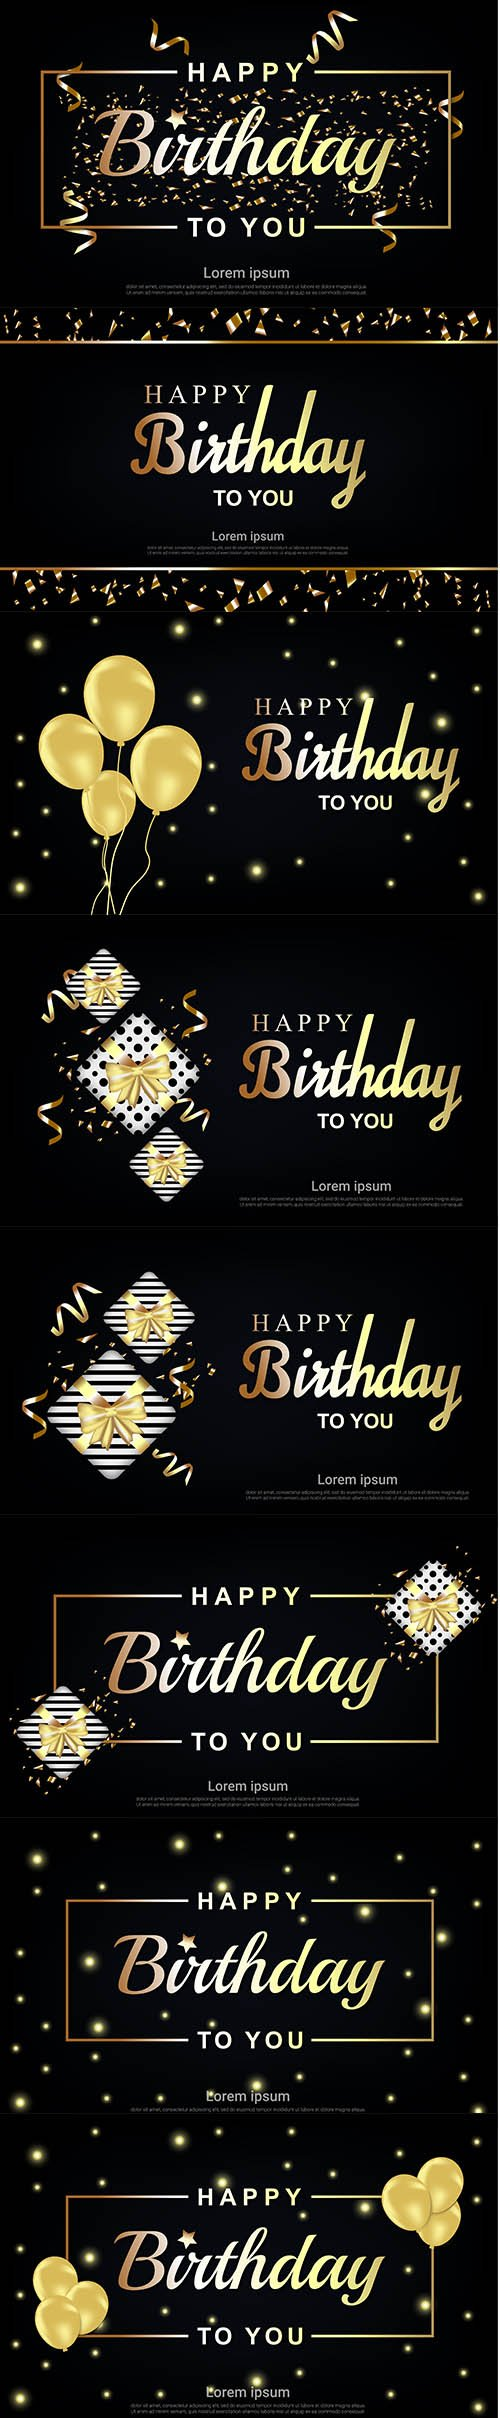 Happy Birthday Illustration with Gold Letter Set